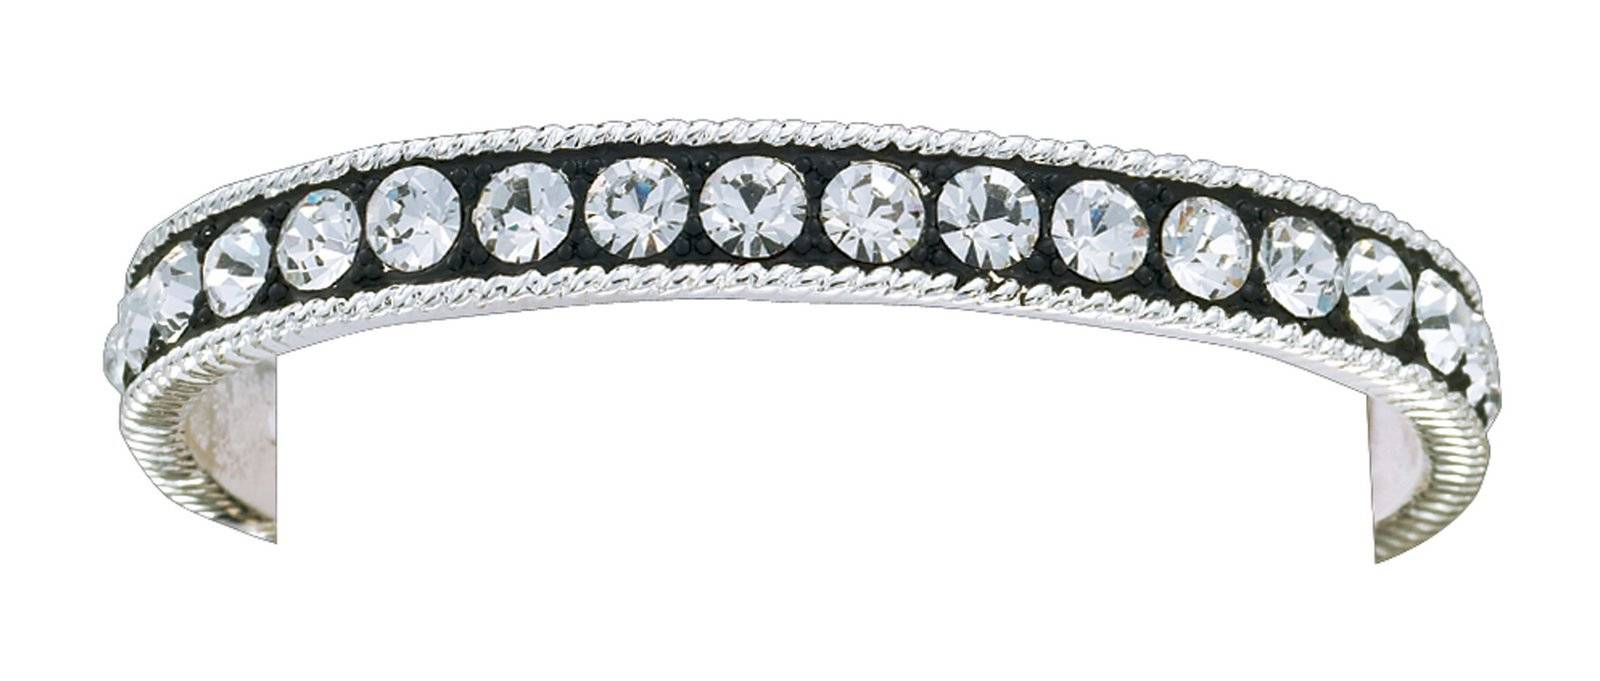 Montana Silversmiths Crystal Shine Bangle Bracelet